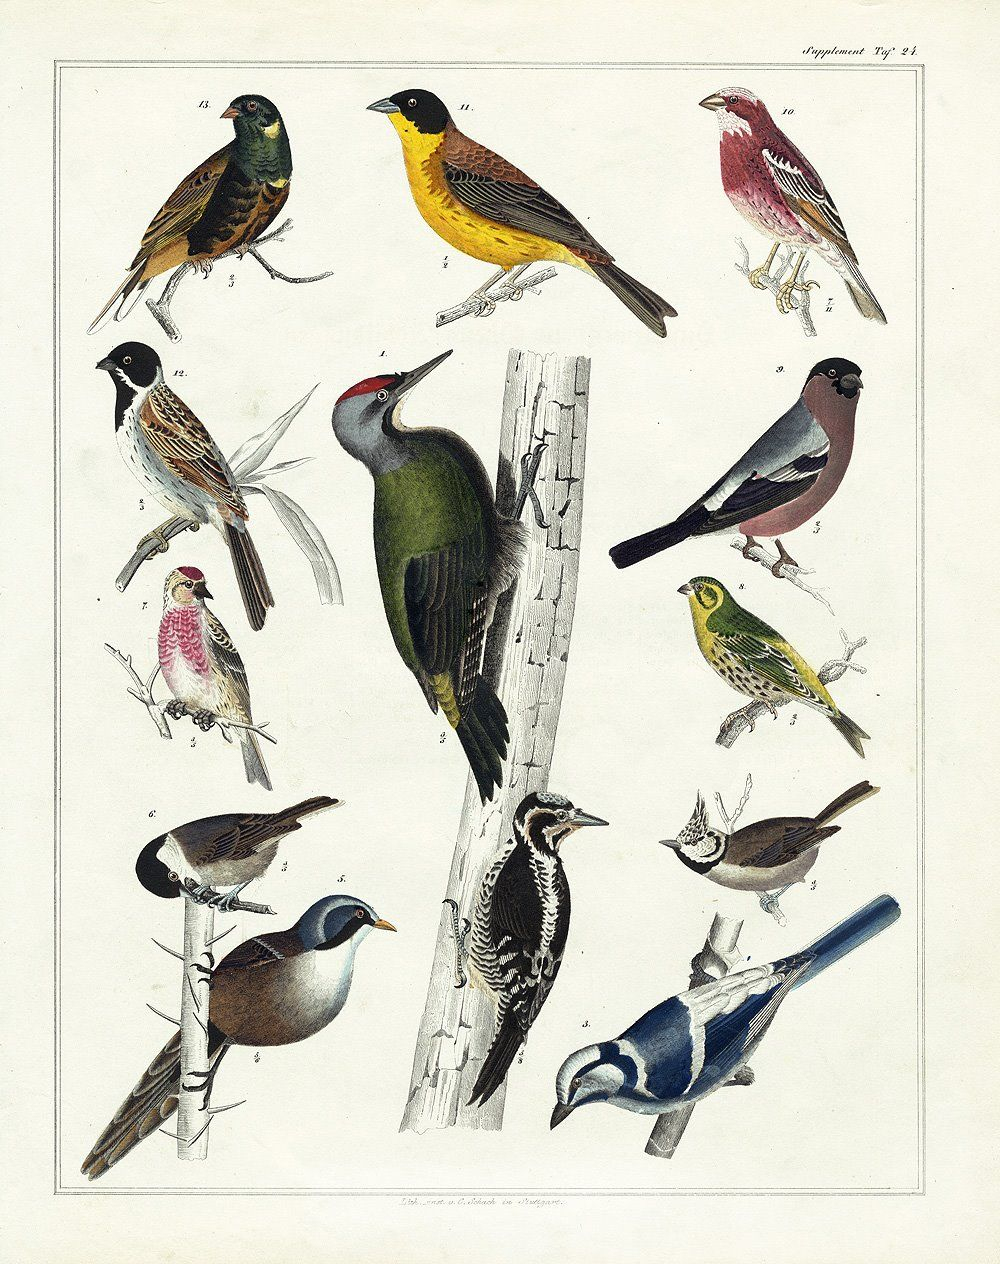 Over 25 Free Vintage Bird Printable Images   Remodelaholic #art - Free Printable Images Of Birds